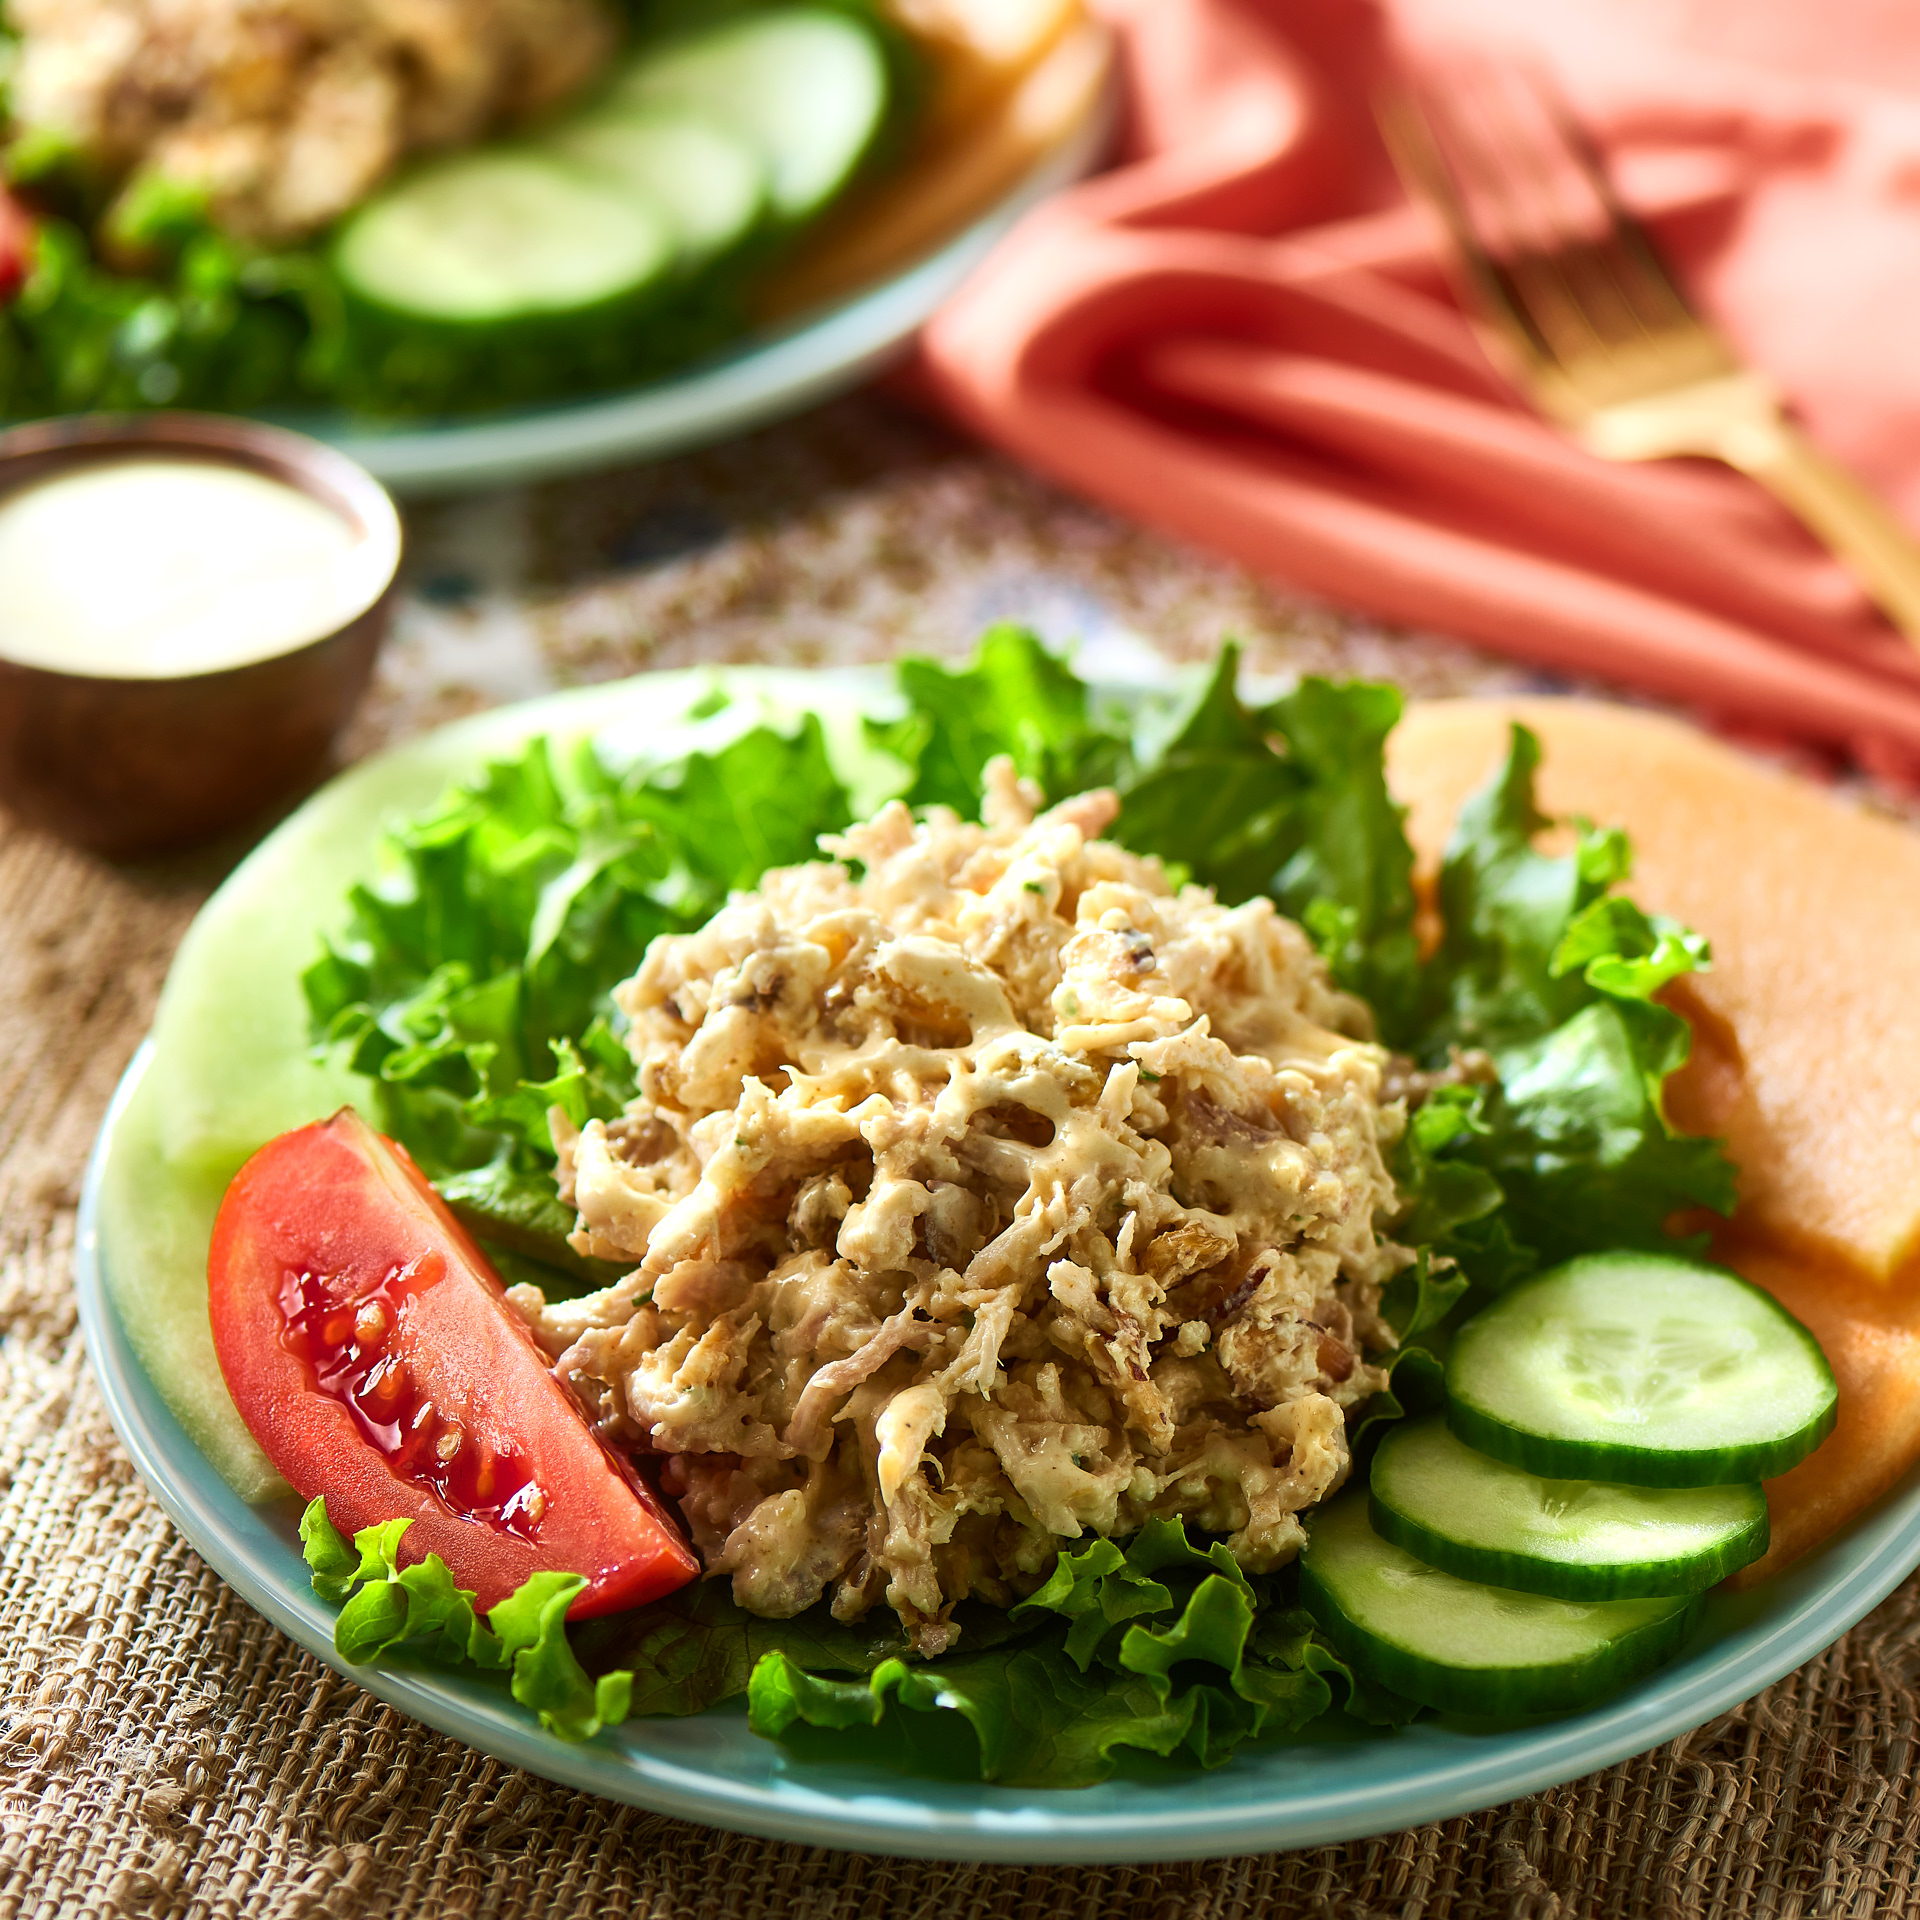 Mumbai Chicken Salad